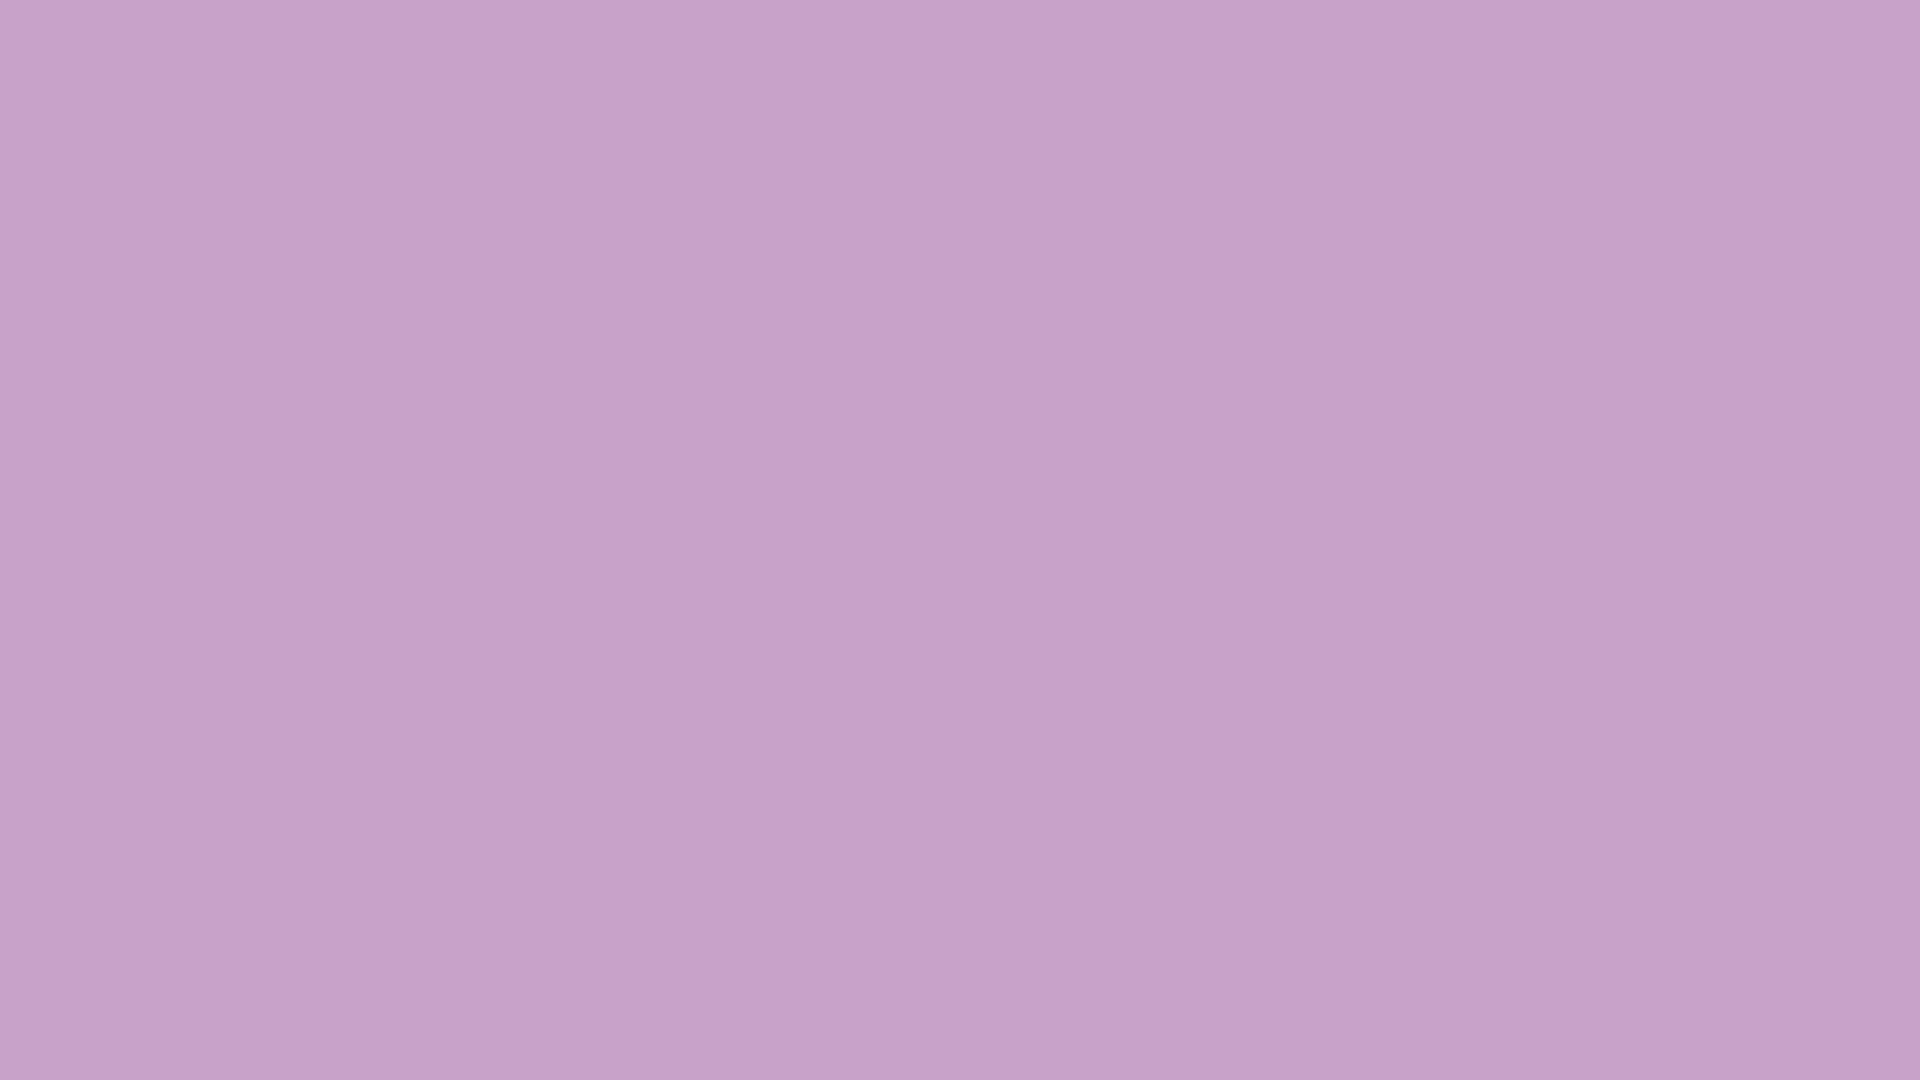 1920x1080 Lilac Solid Color Background